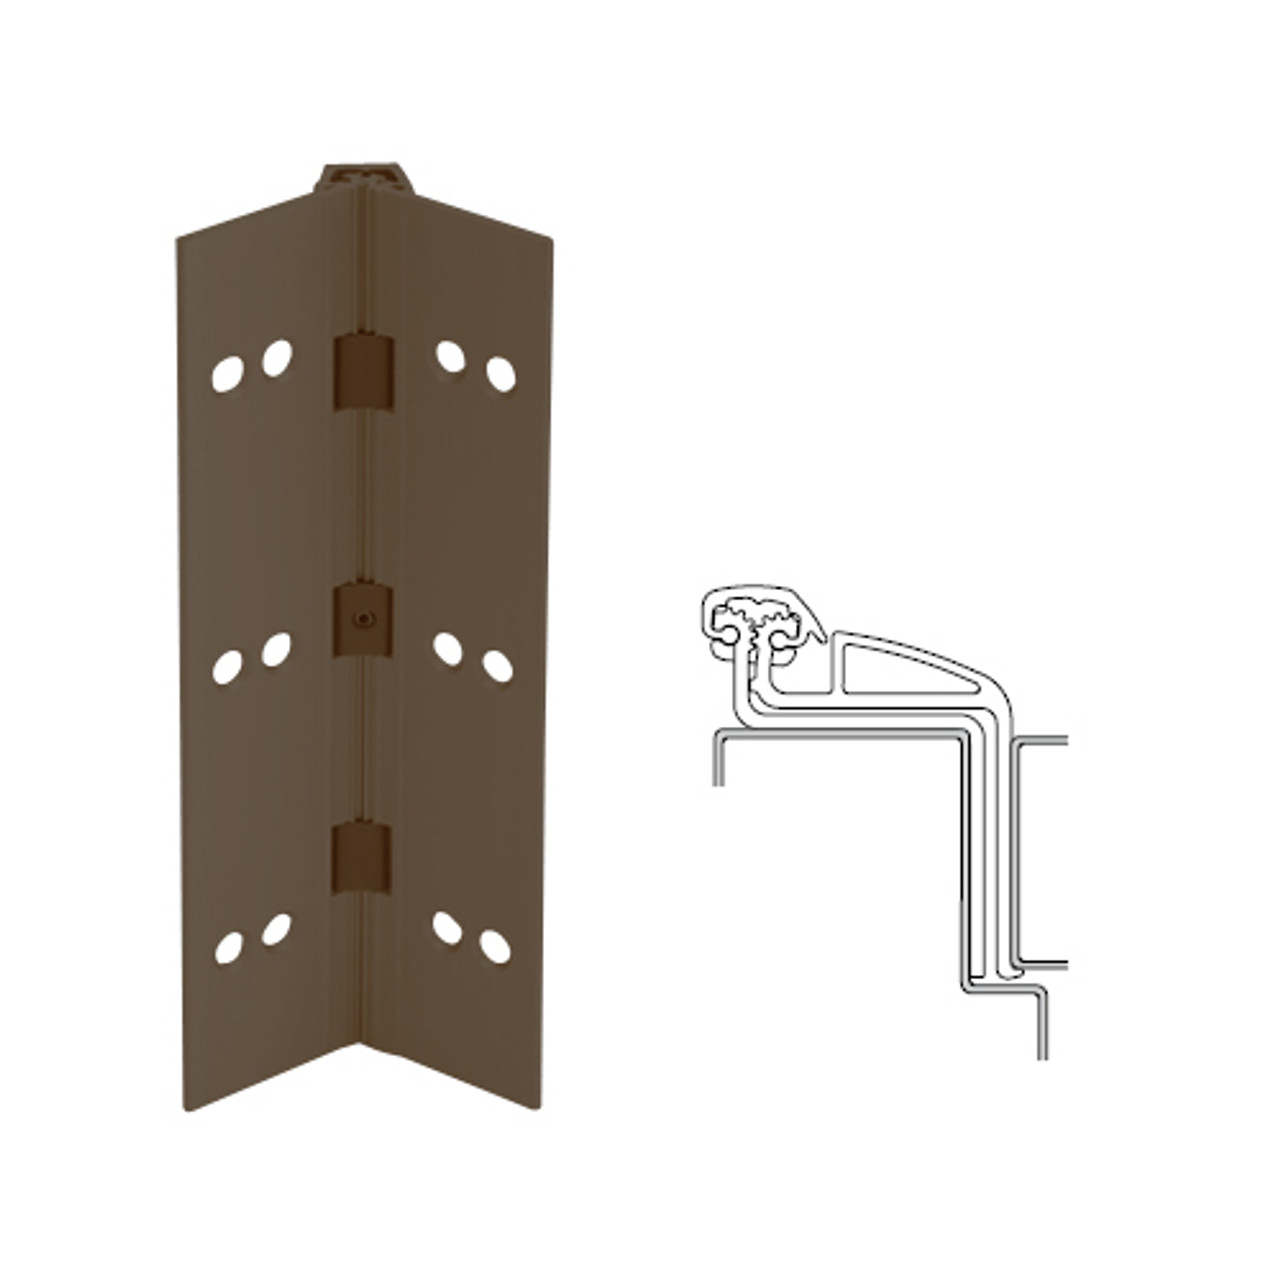 041XY-313AN-95-TEKWD IVES Full Mortise Continuous Geared Hinges with Wood Screws in Dark Bronze Anodized